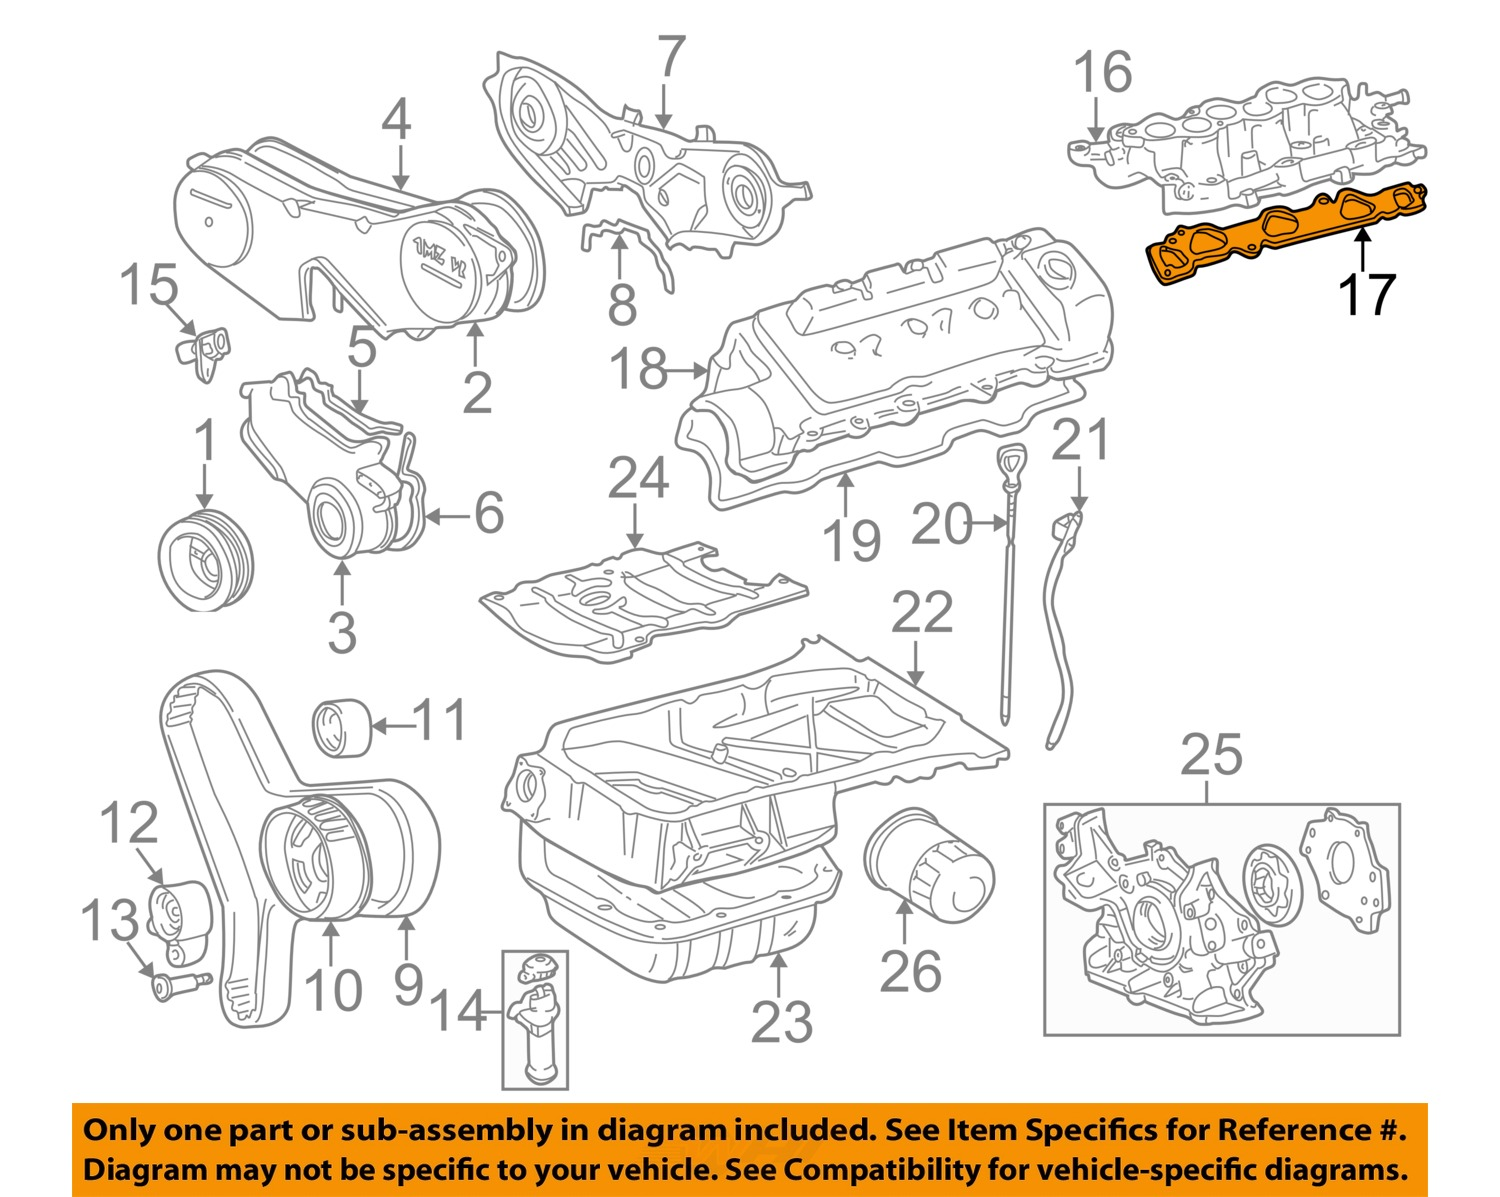 Sell Toyota Oem Engine Intake Manifold Gasket 1717820020 Motorcycle With Diagram